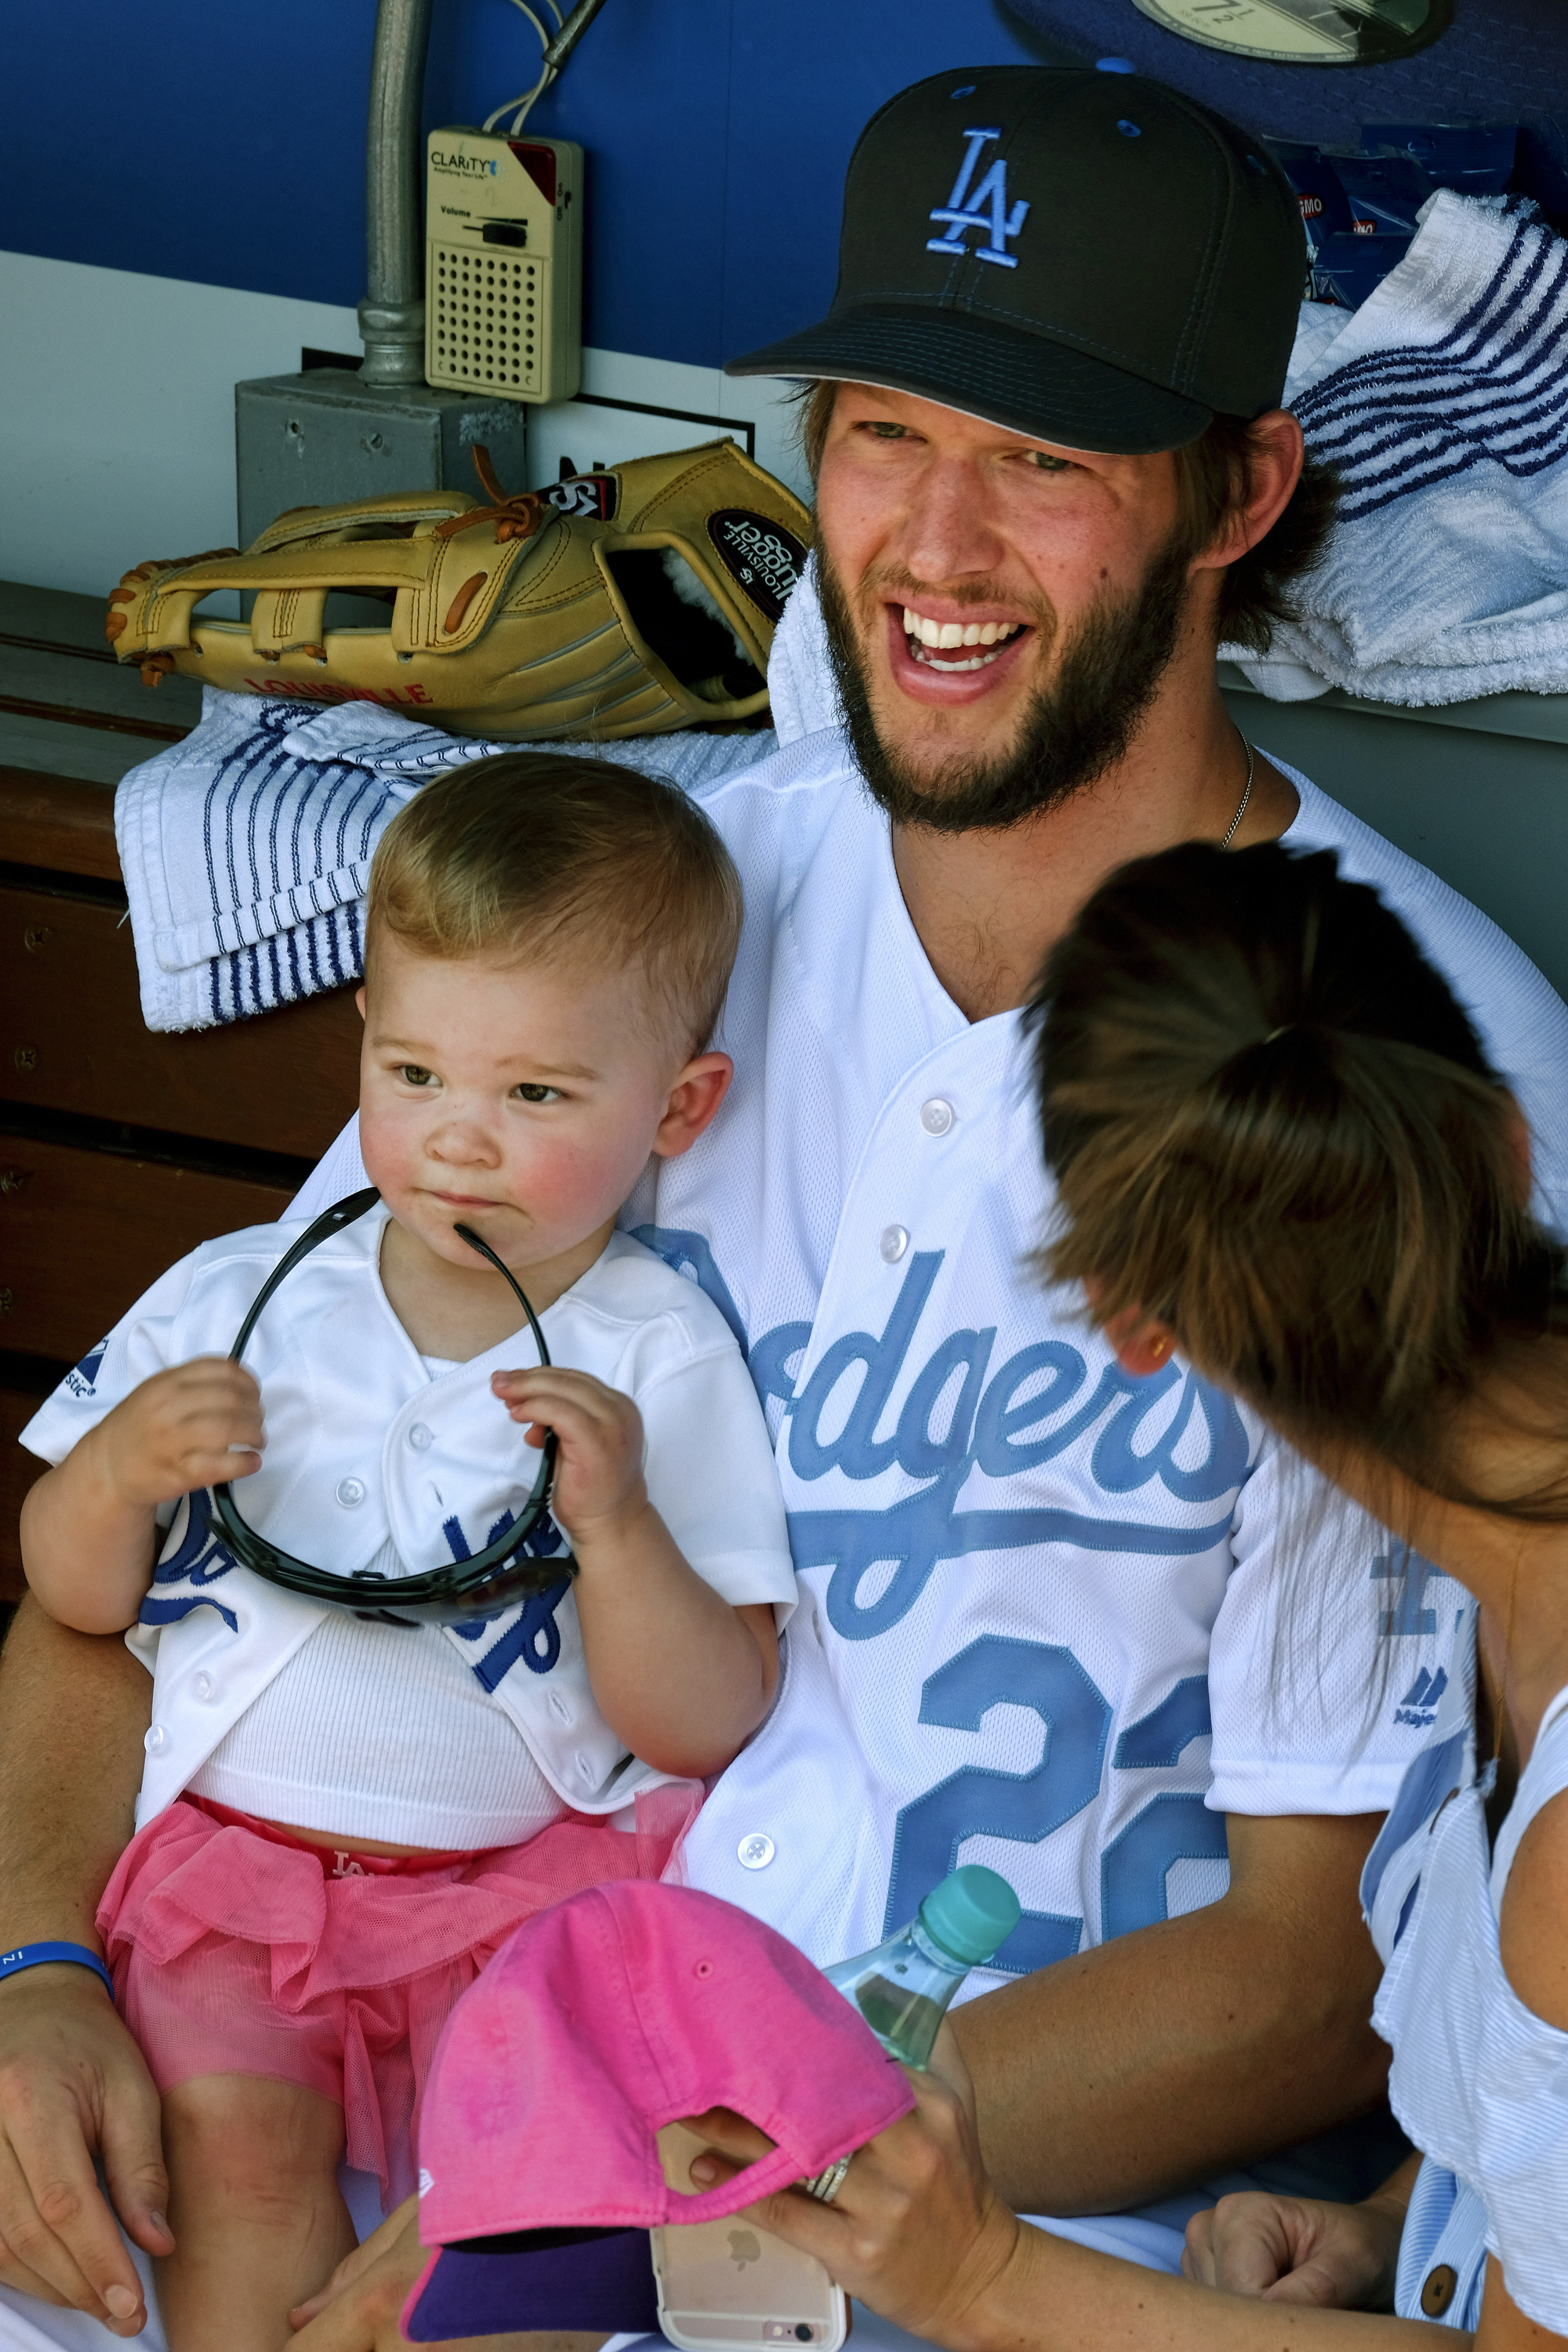 Los Angeles Dodgers starting pitcher Clayton Kershaw celebrates Father's Day with his daughter prior to the team's game against the Milwaukee Brewers on at Dodger Stadium, Sunday, June 19, 2016. (AP Photo/Richard Vogel)